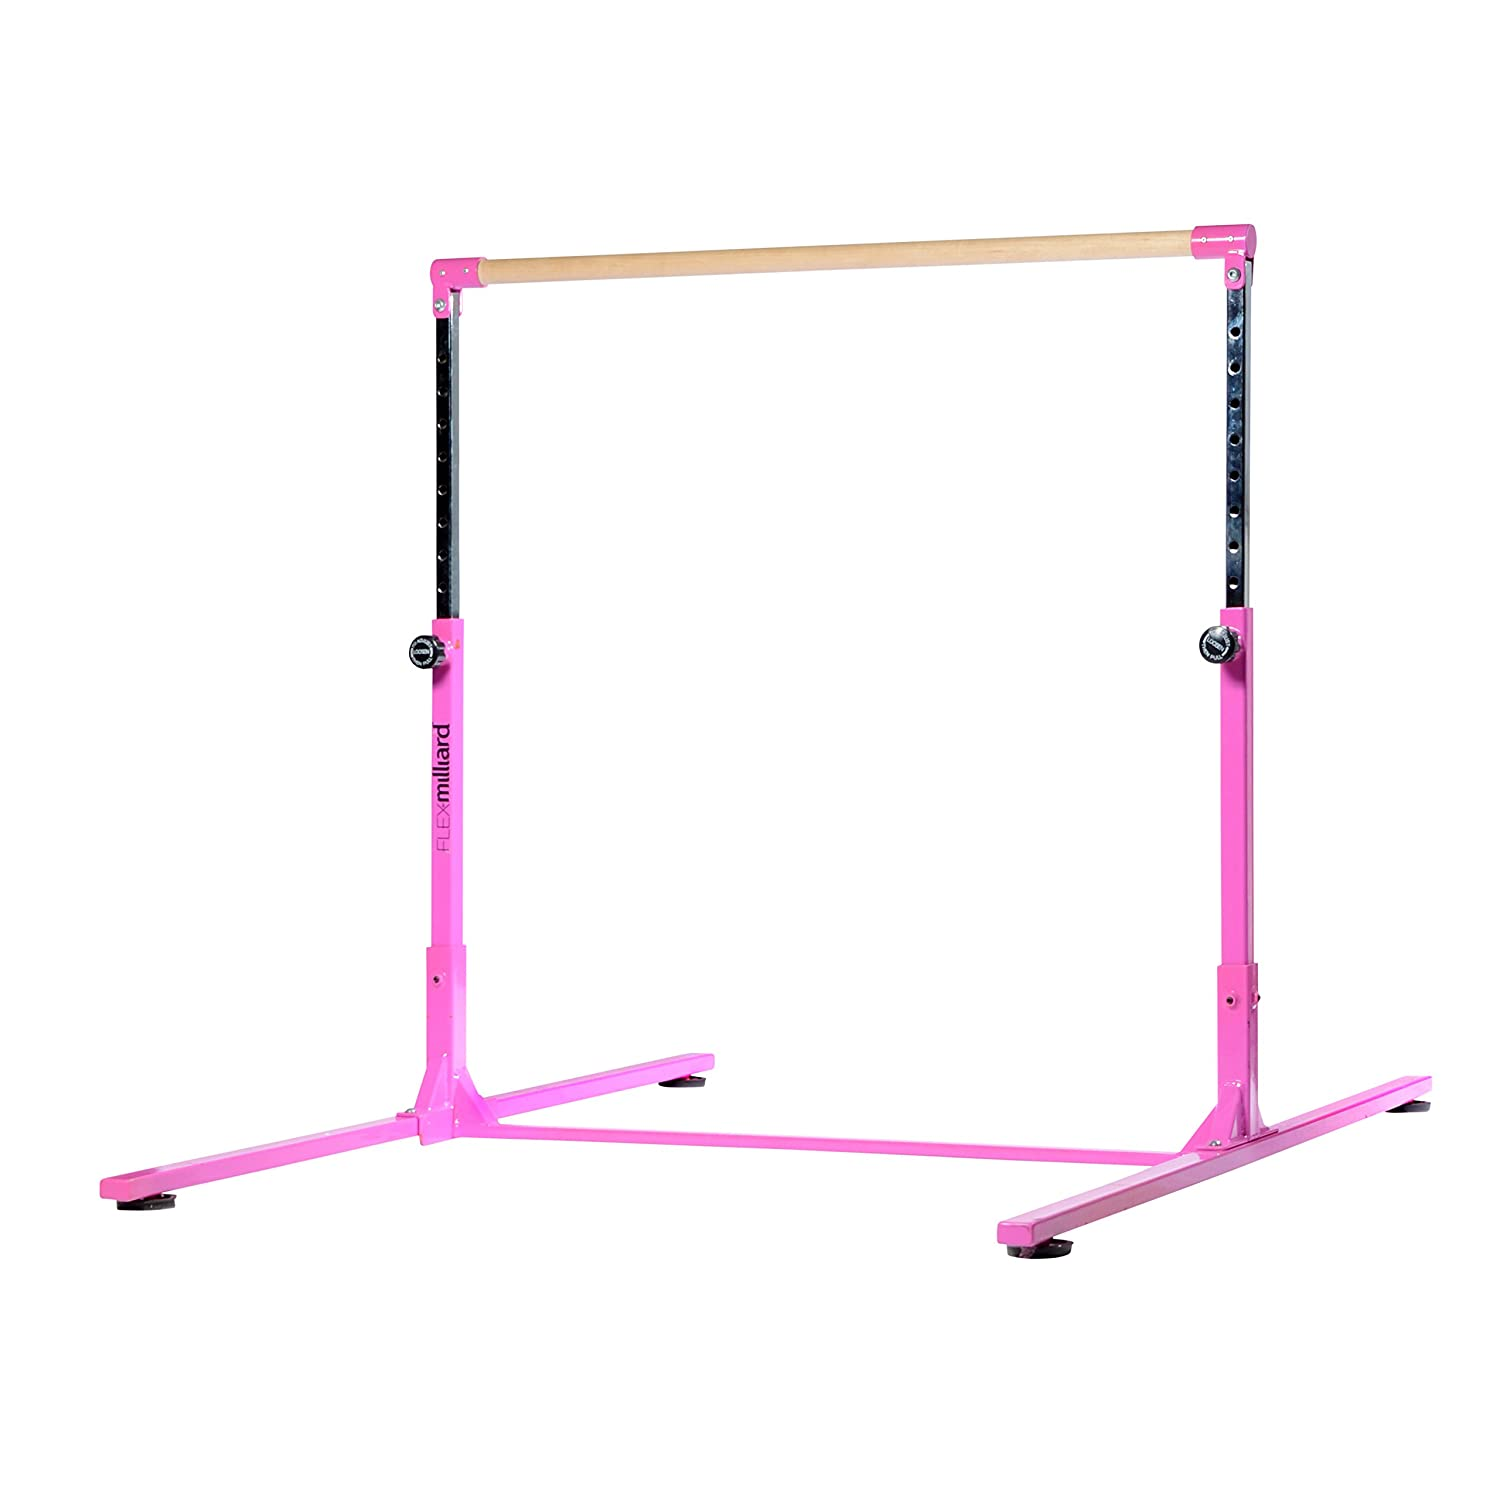 8. Flex by Milliard Professional Kip Bar - Best Entry-level Ballet Barre